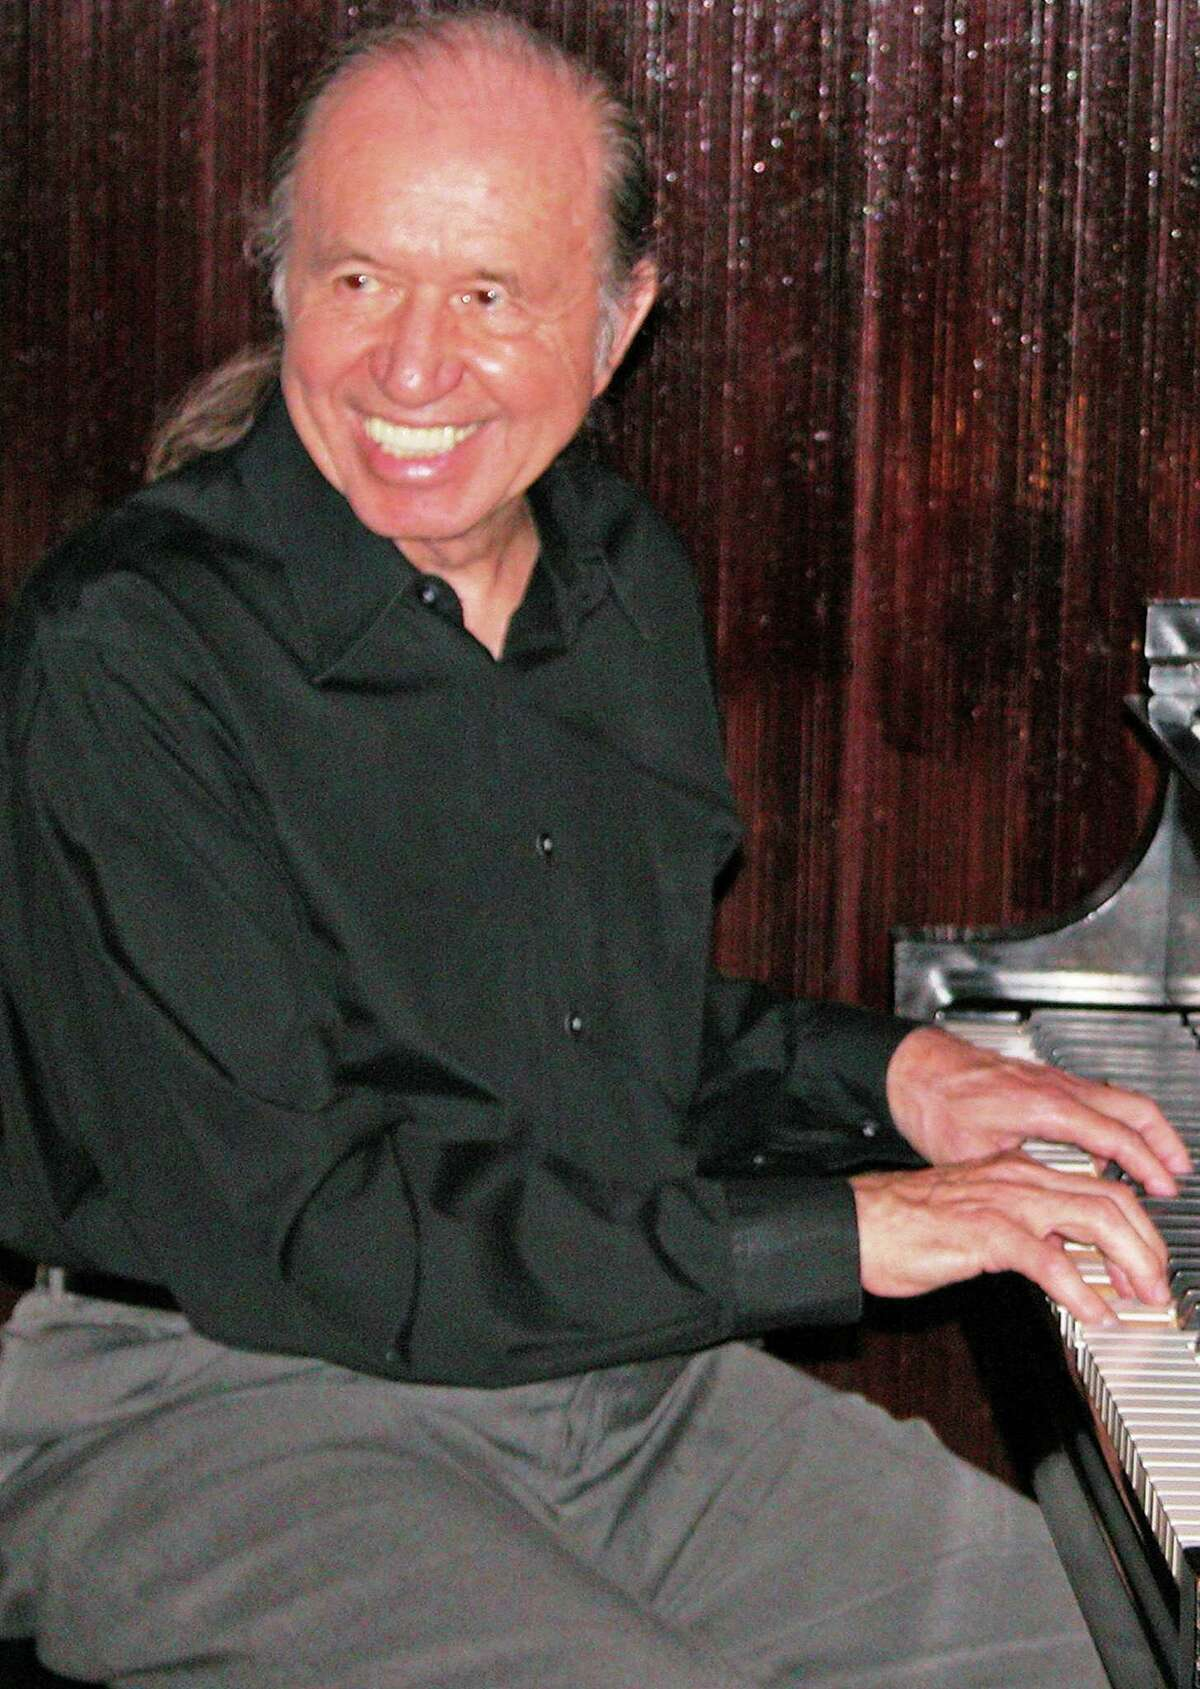 Eclectic jazz pianist and singer Bob Dorough will present a concert at Northweat Vista College. Courtesy photo